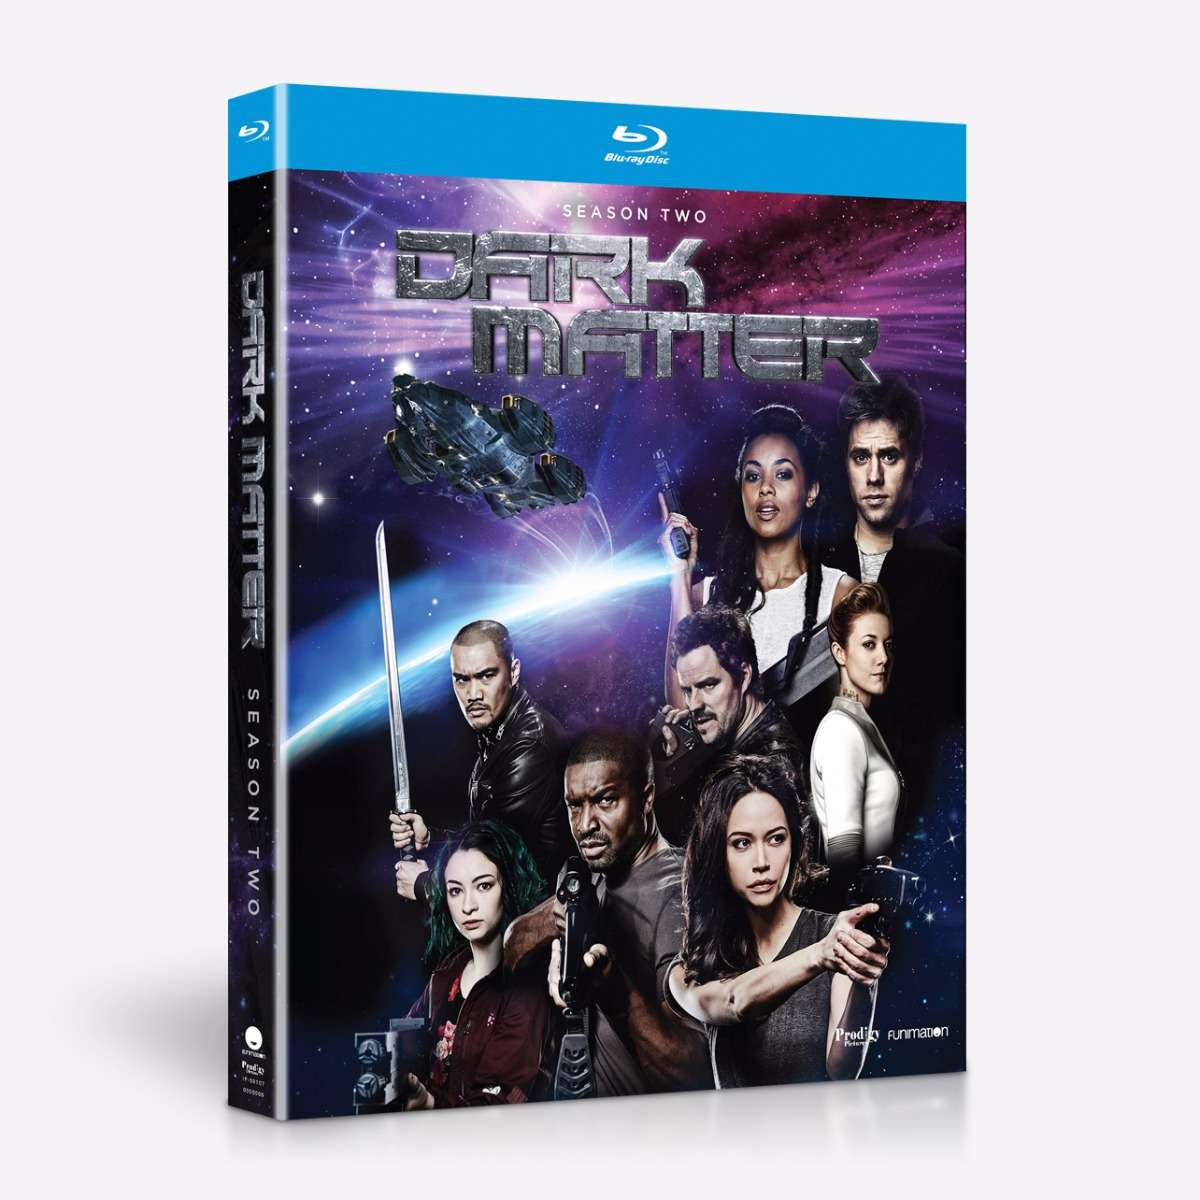 Season Two - Blu-ray home-video